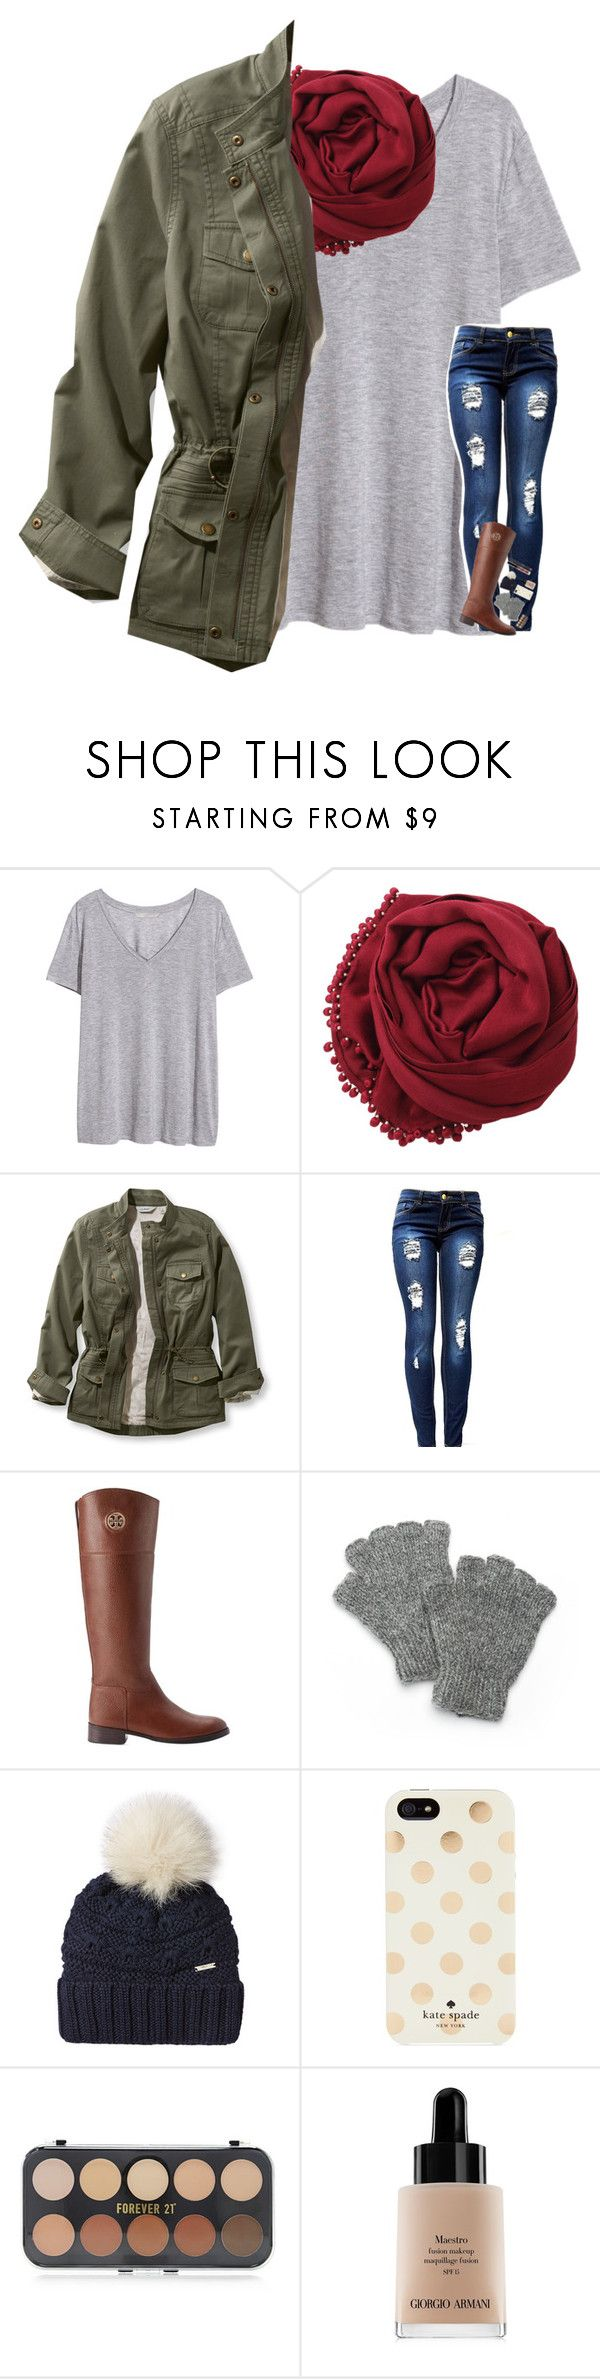 """Contest Entry #2"" by kat-attack ❤ liked on Polyvore featuring H&M, Bajra, L.L.Bean, Tory Burch, SIJJL, Woolrich, Kate Spade, Forever 21, Giorgio Armani and paige100"